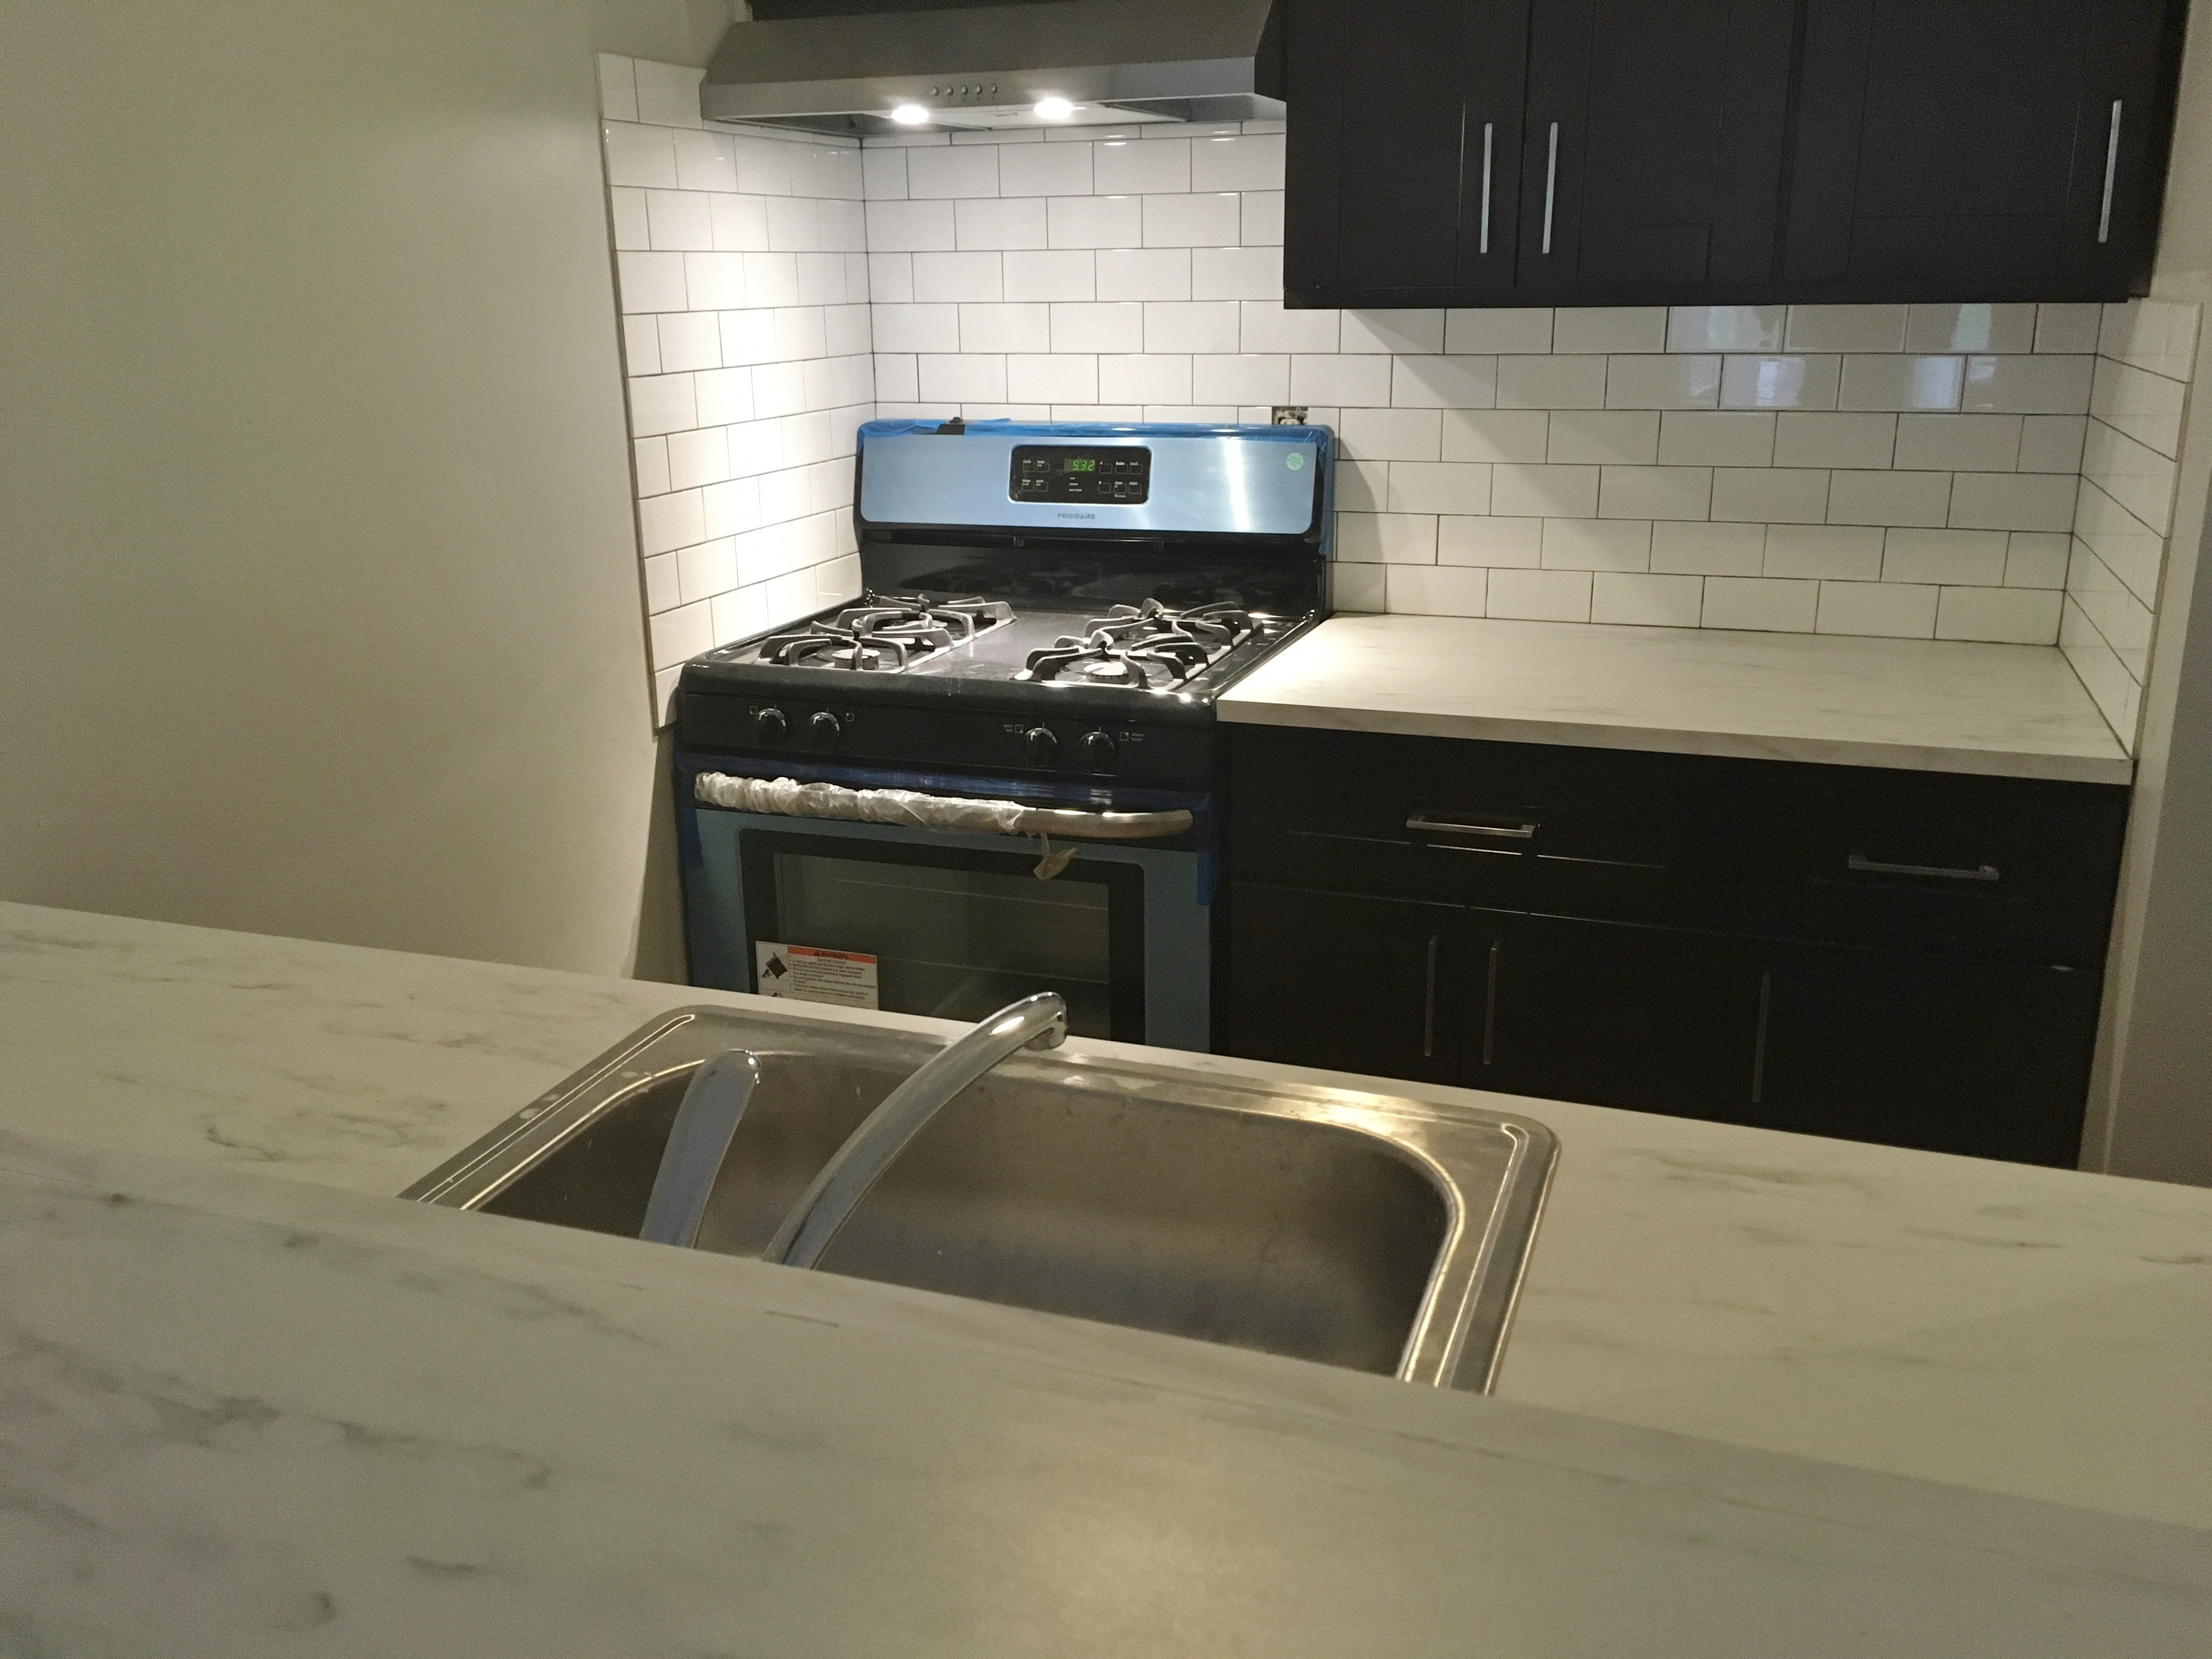 Kitchen cabinets in the bronx ny - E 141st St Willis Ave Bronx Ny 10454 3 Bedroom Apartment For Rent For 2 250 Month Zumper